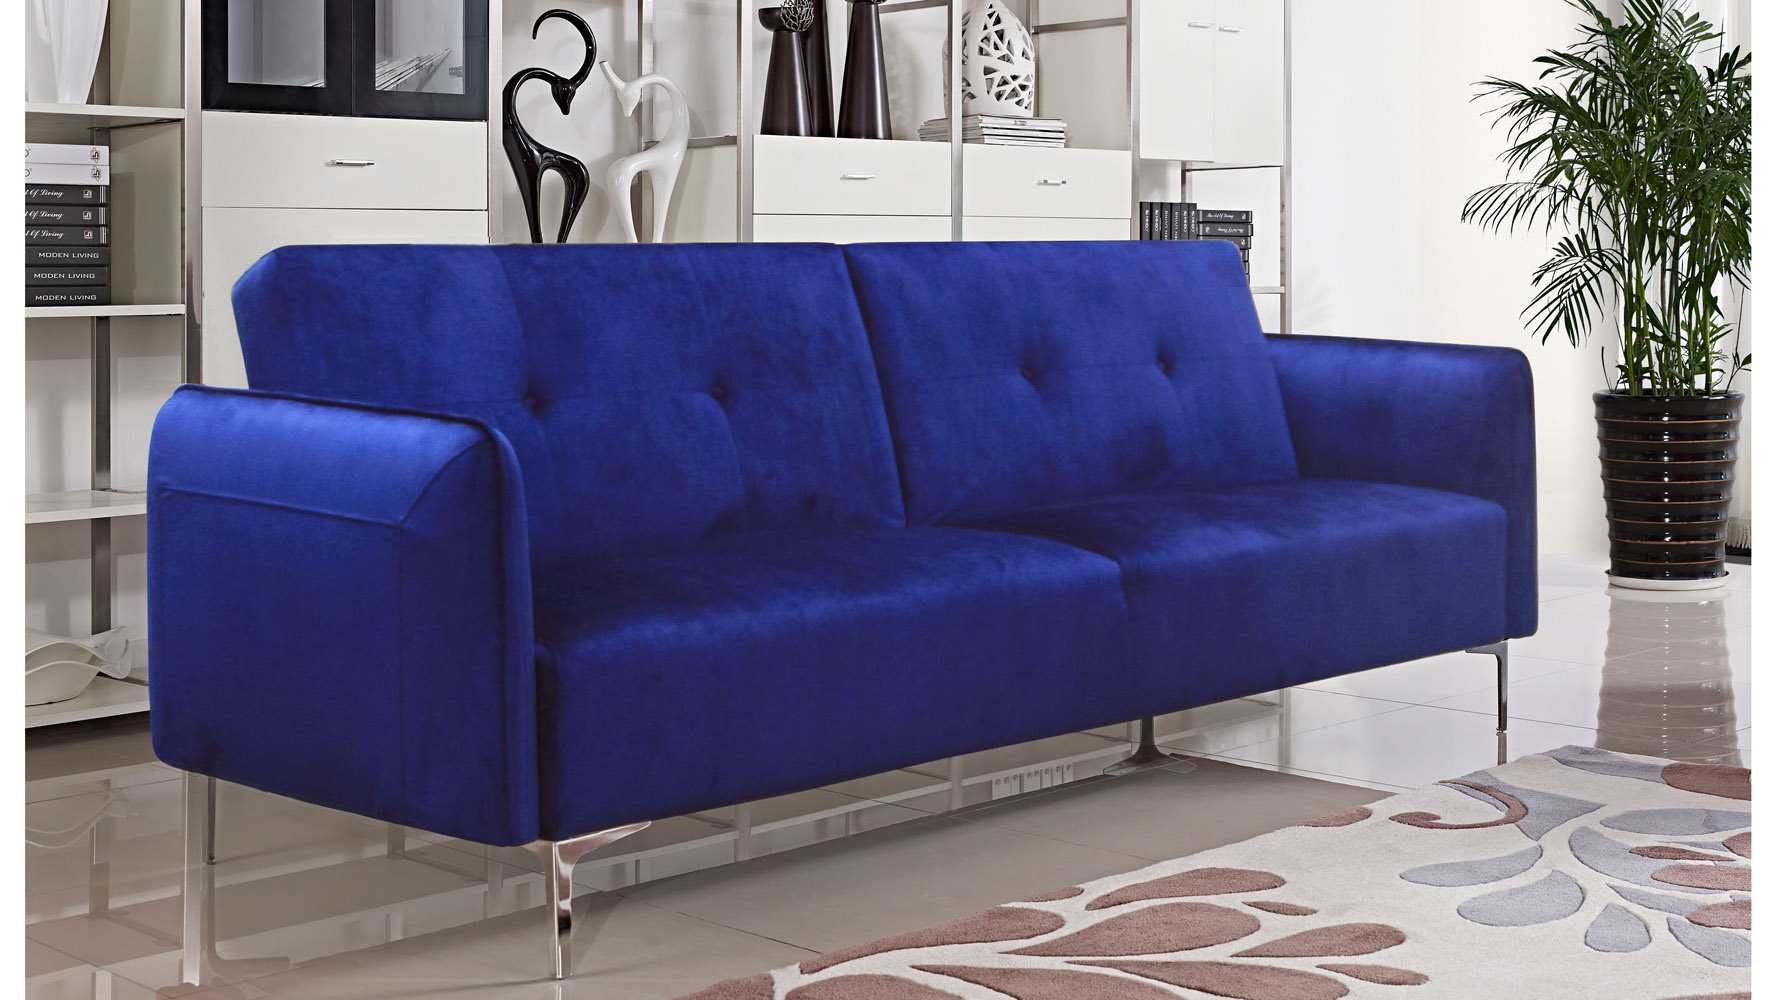 Etonnant Arie Tufted Fabric Sofa Bed With Chrome Legs   Cobalt Blue | Zuri Furniture